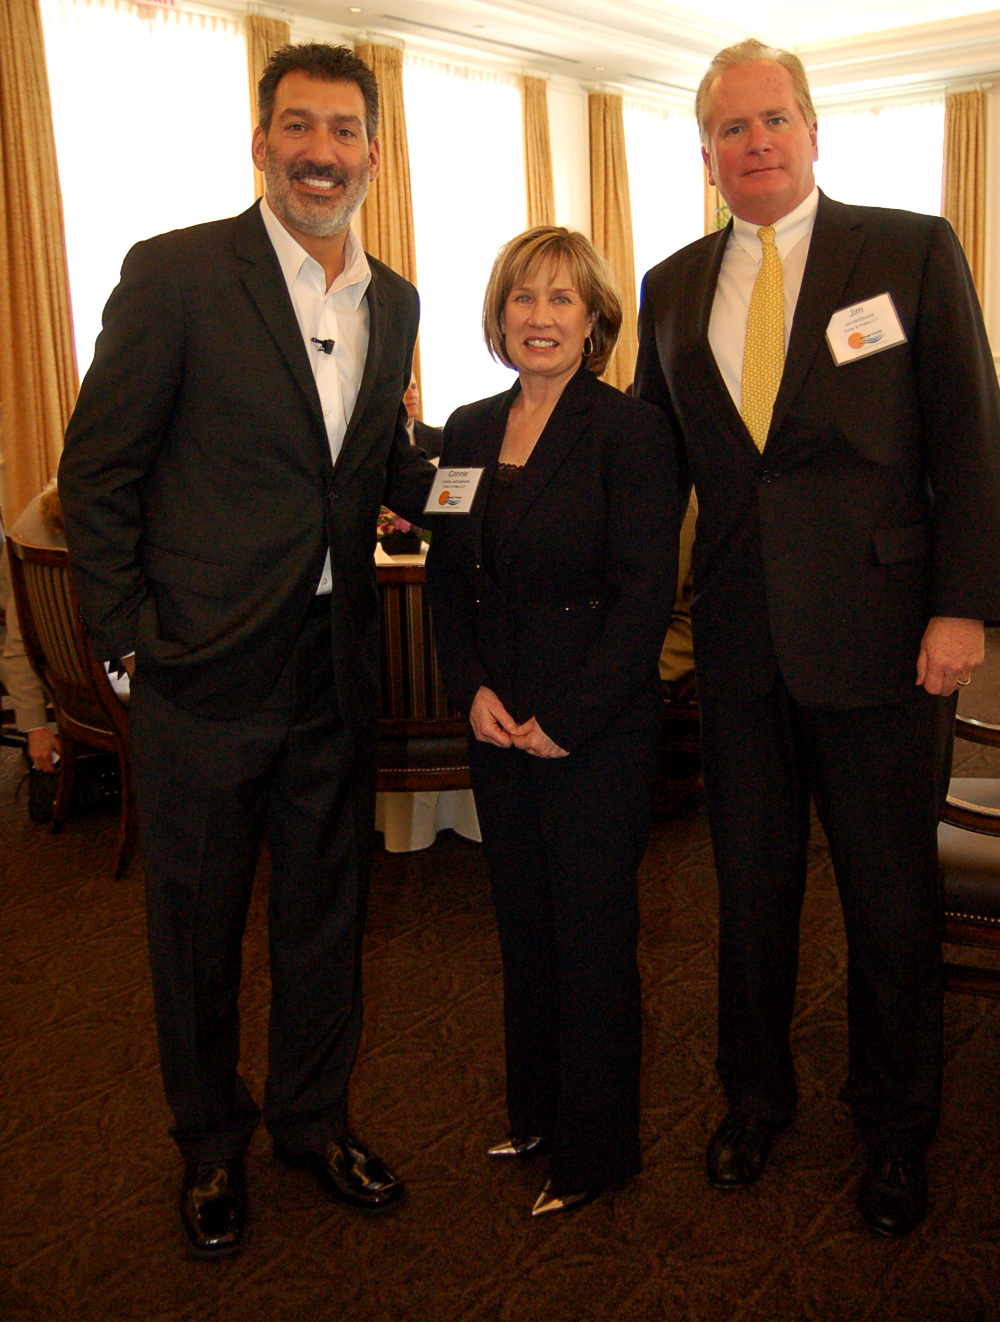 Keynote Speaker David Avrin with Connie Jedrzejewski and Jim McDonald of Fisher and Phillips LLP